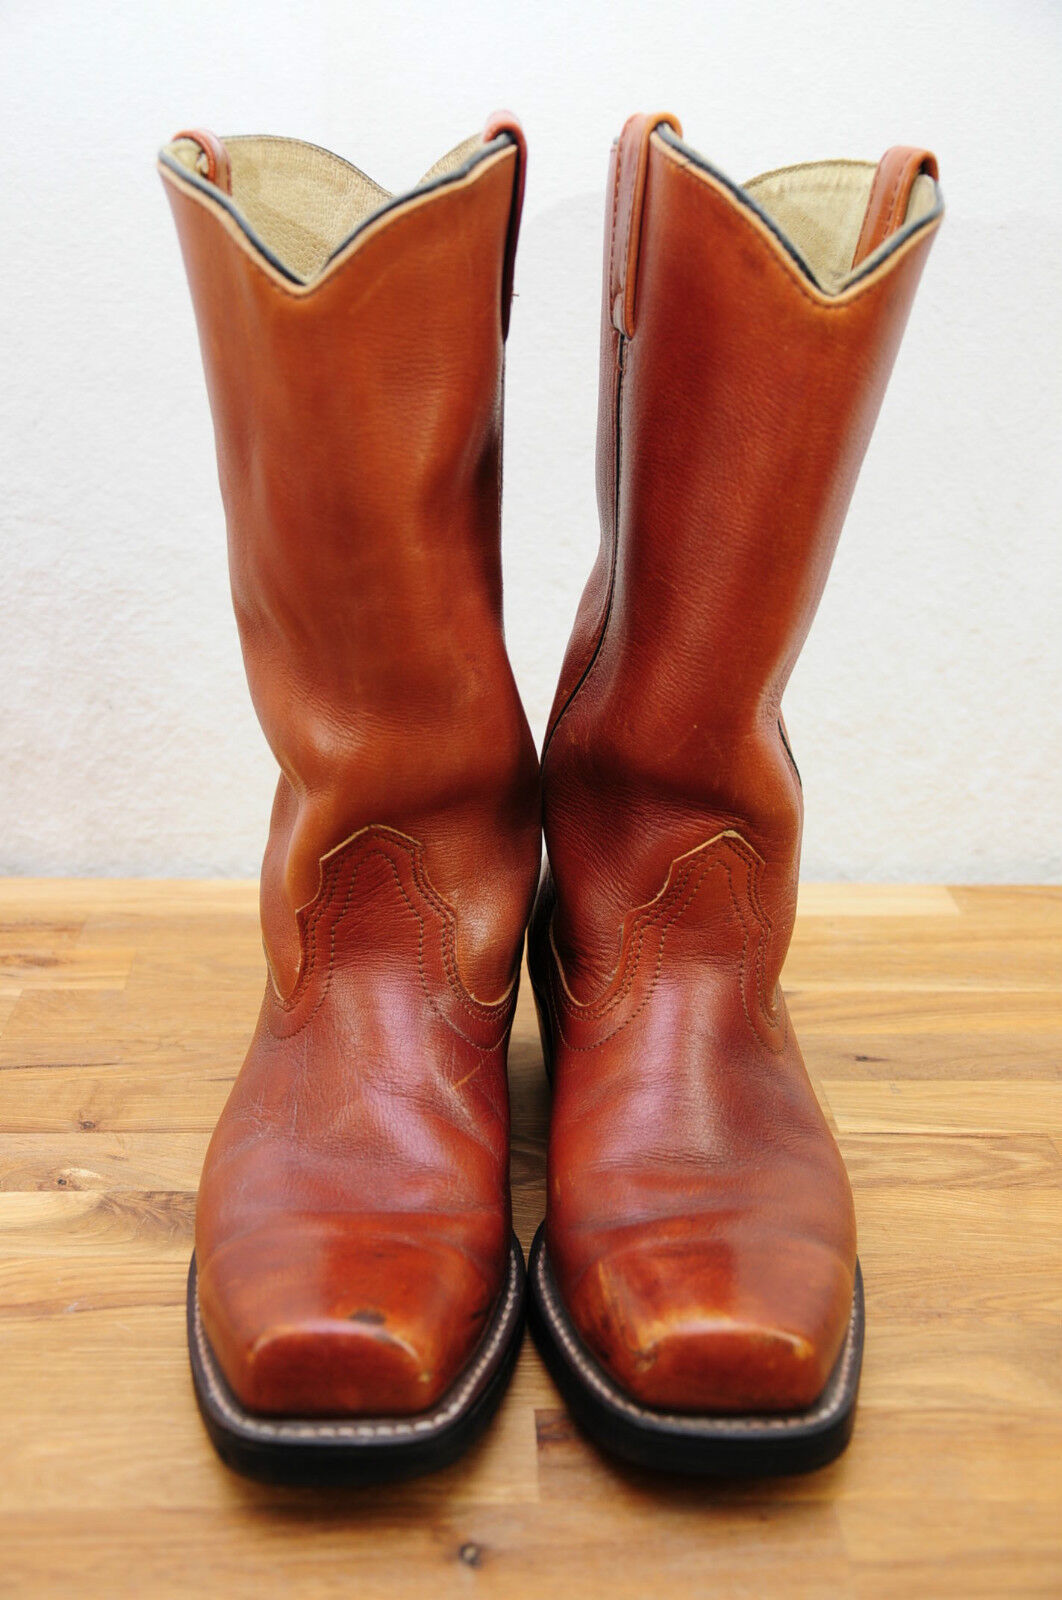 VTG SEARS Roebuck Brown Leather Square Toe Motorcycle or Cowboy Boots 8D EUC